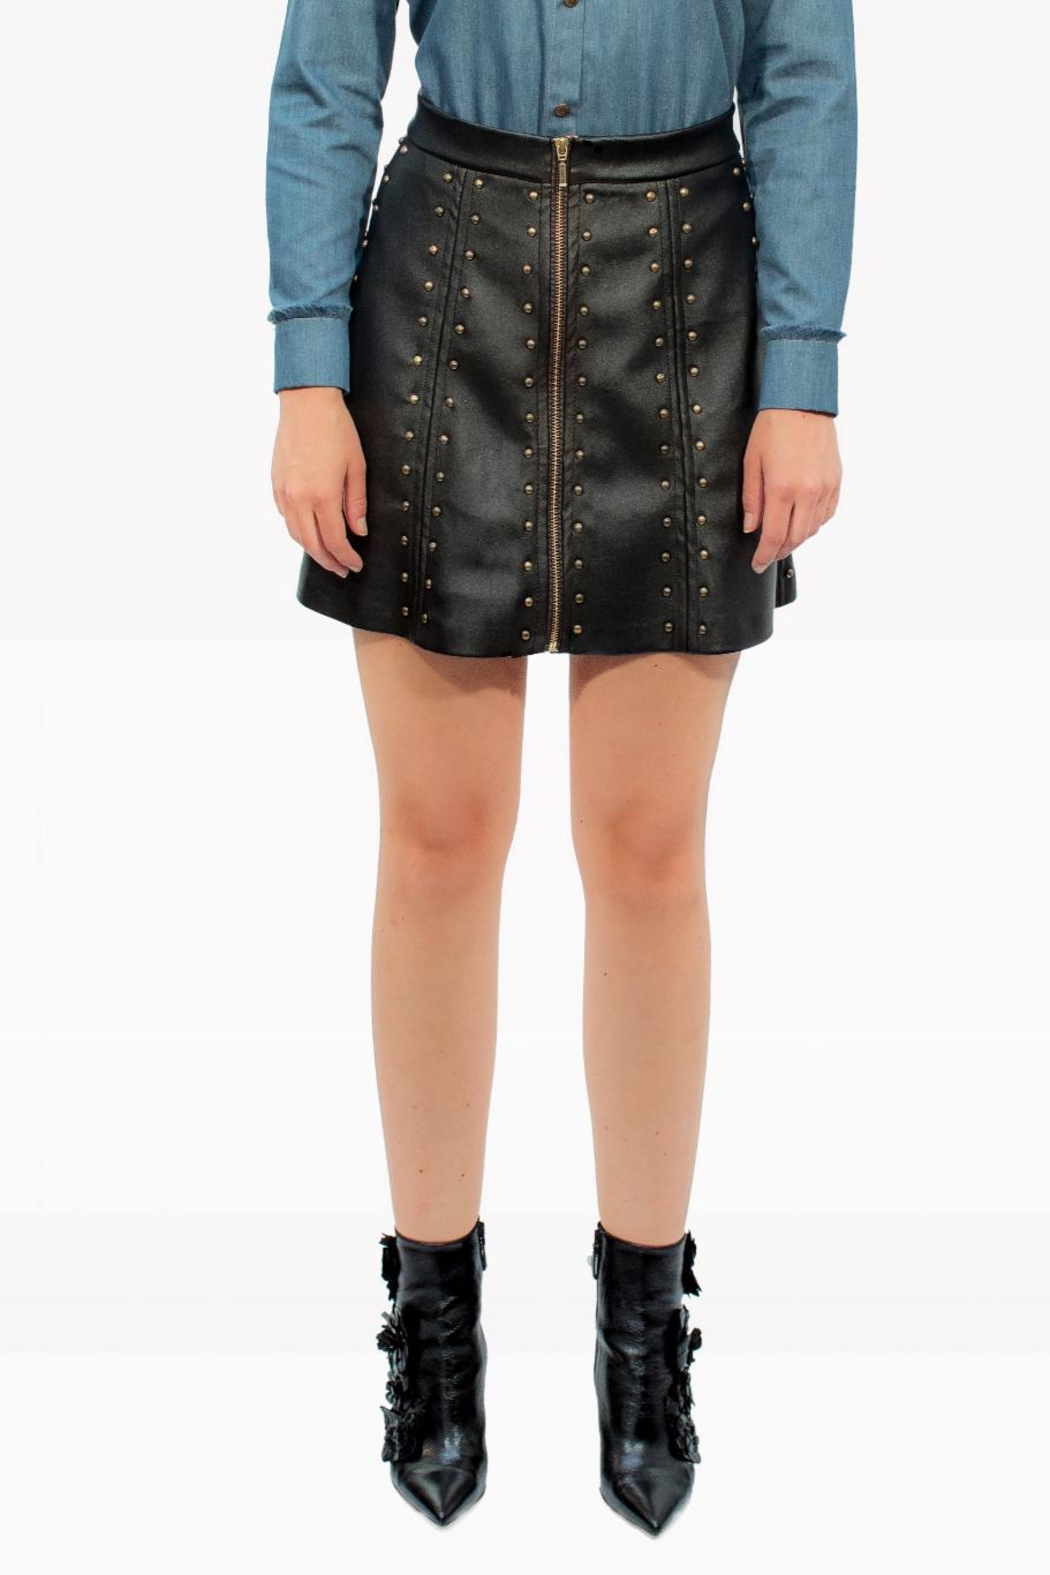 Viesca y Viesca Studded Leather Skirt - Front Full Image